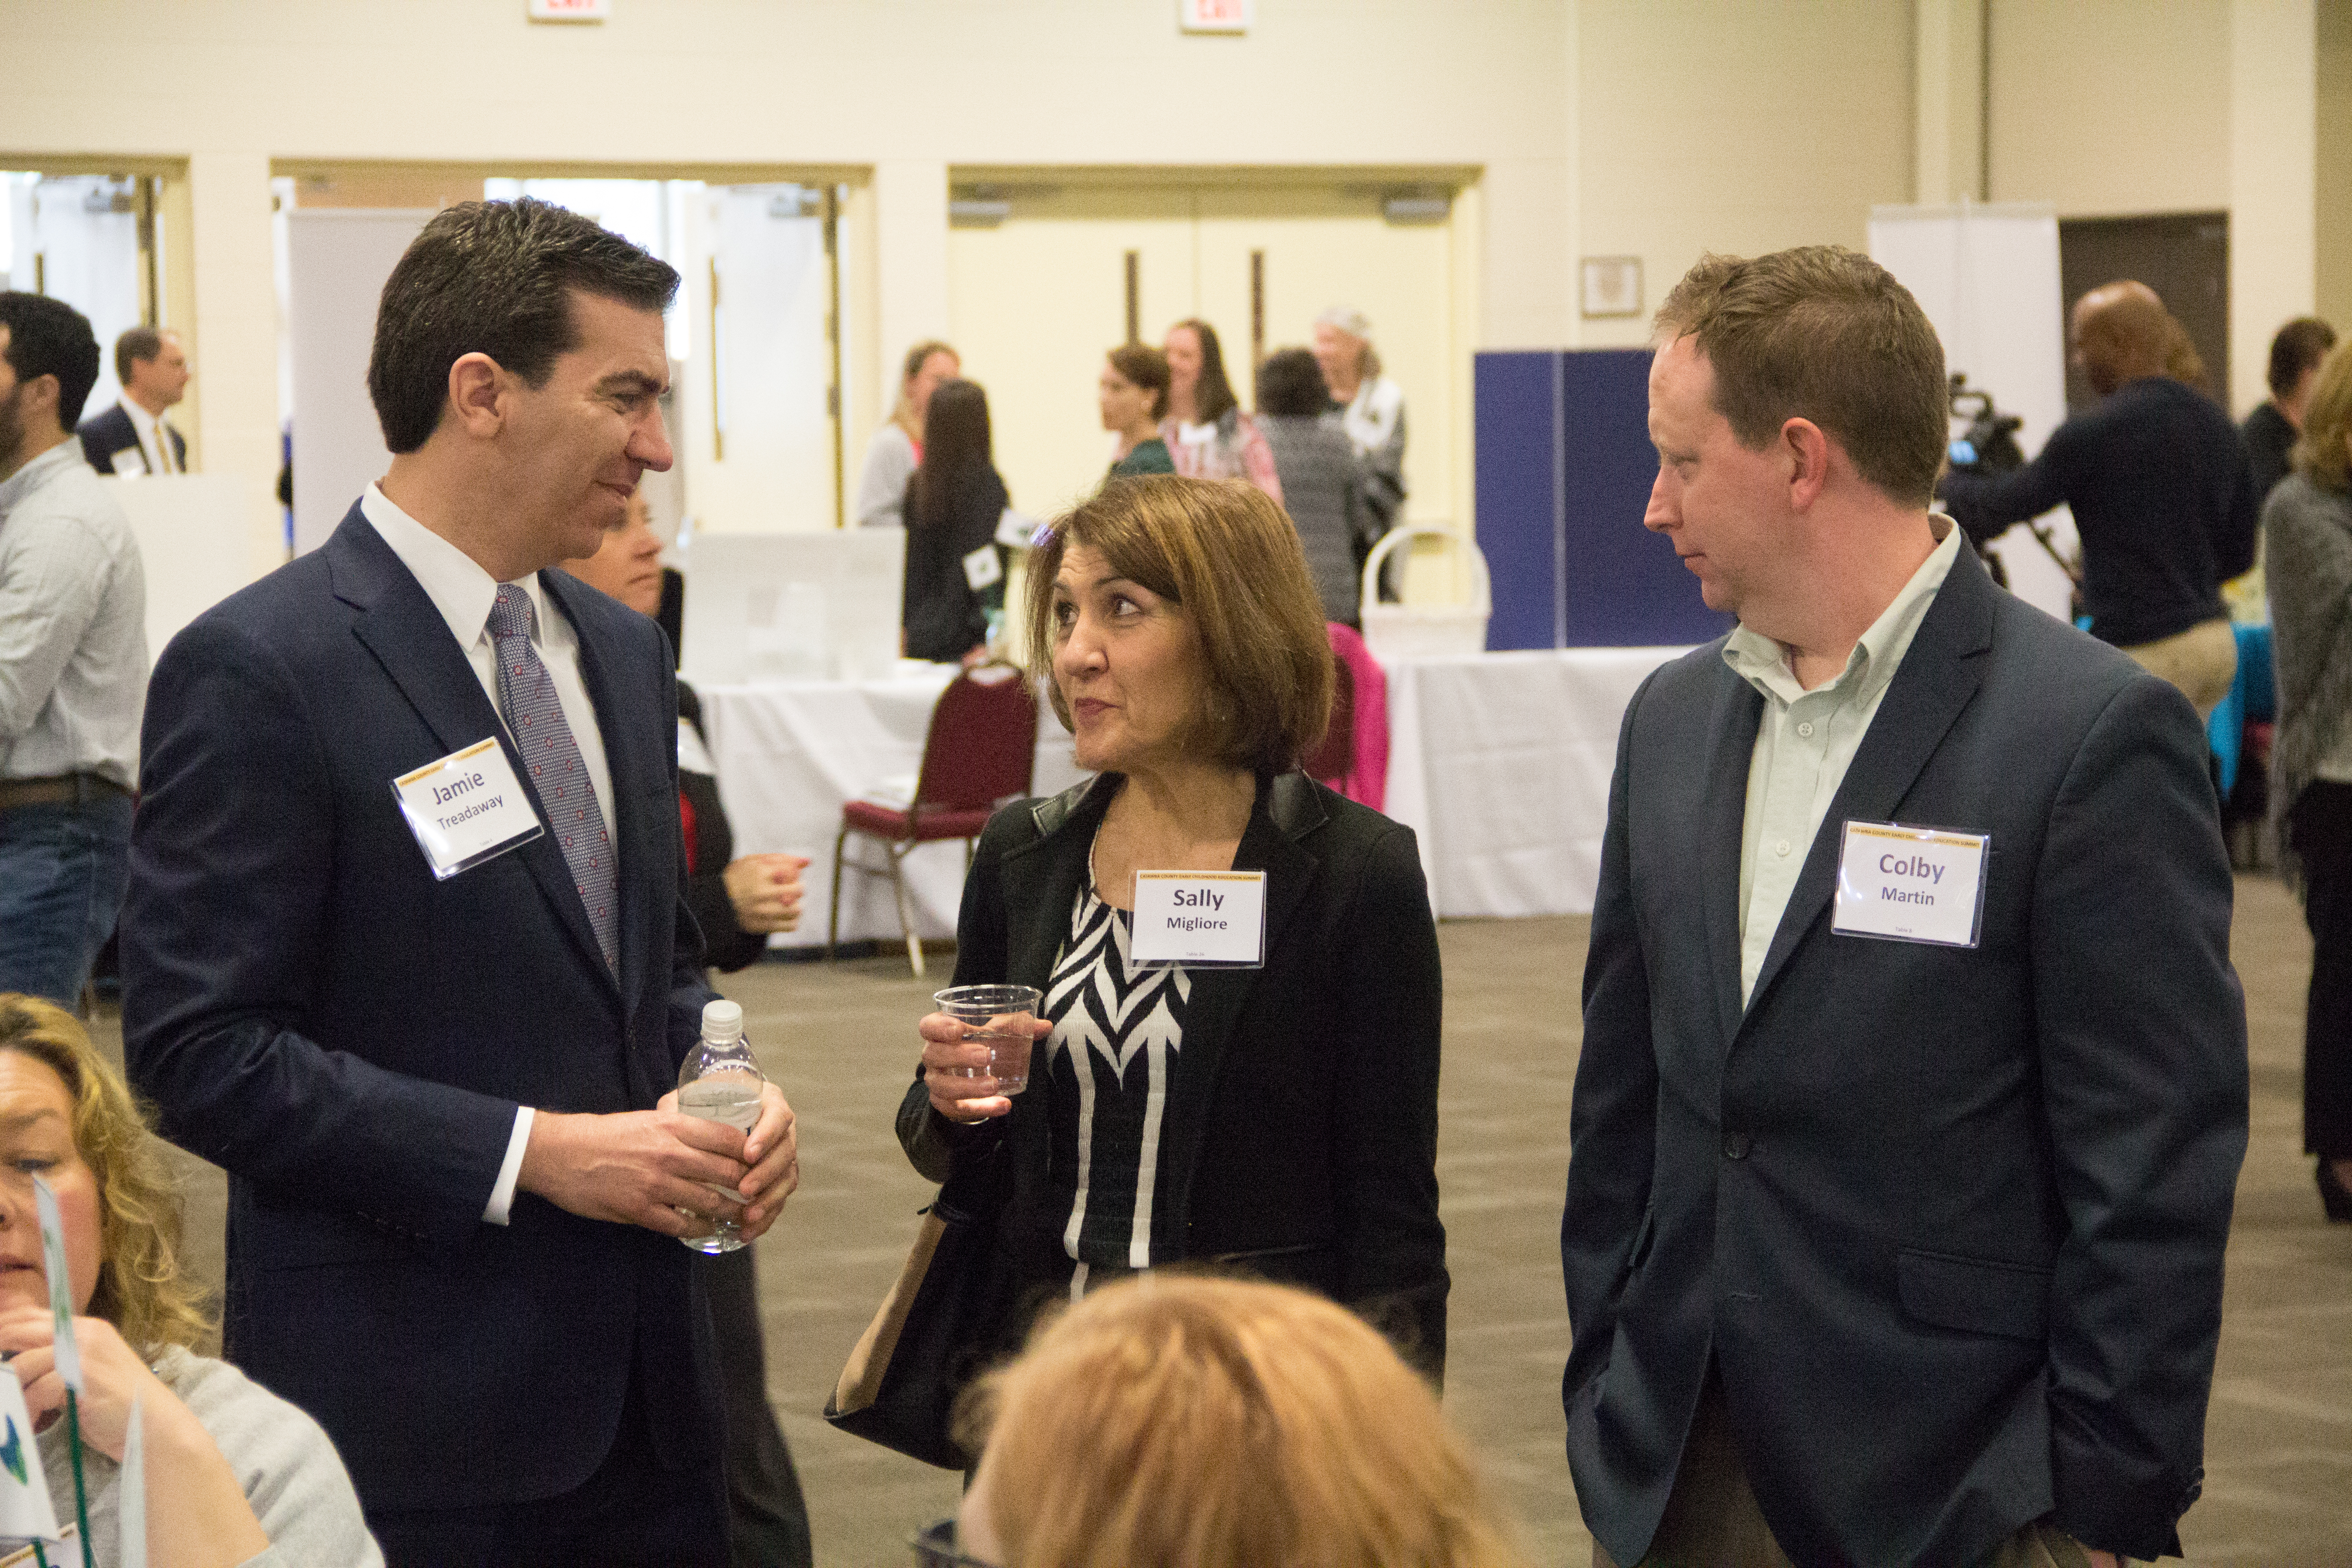 Pictured (left to right) are: Jamie Treadaway, Sally Migliore and Colby Martin at the Catawba County Early Childhood Education Summit.